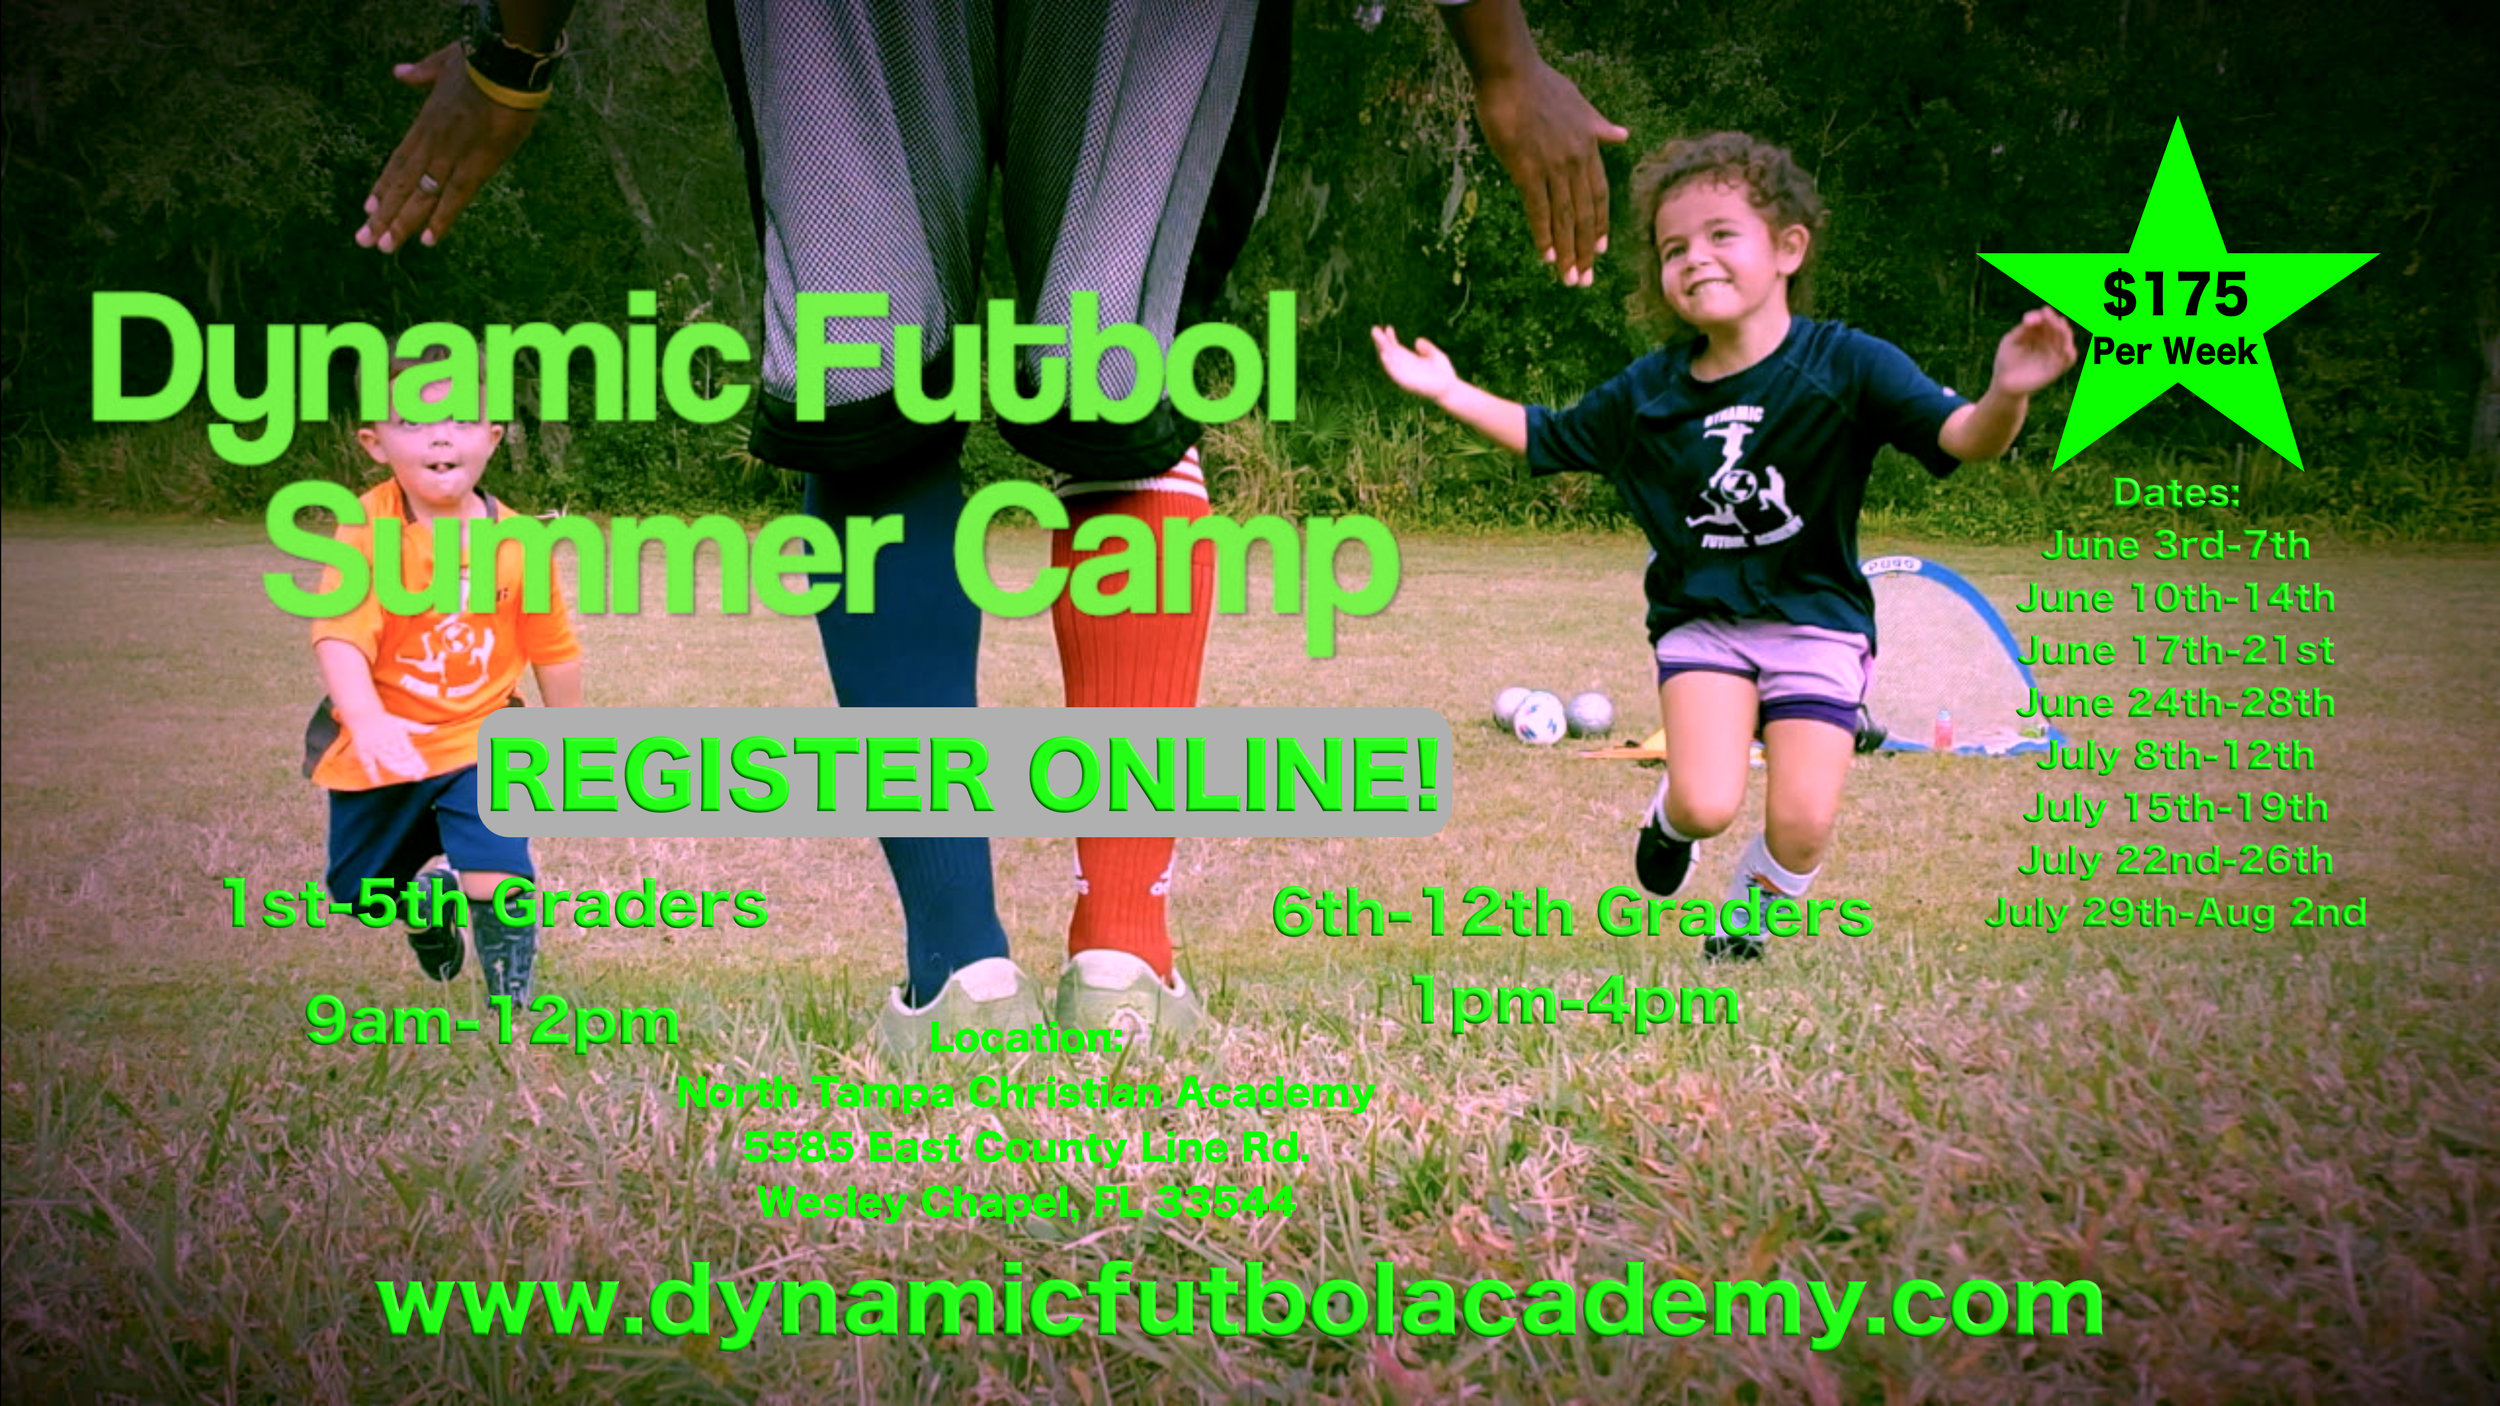 SOCCER CAMP  1st-5th grades - 9am-12pm;  6-12th grades - 1pm-4pm  $175/week  Register at  dynamicfutbolacademy.com